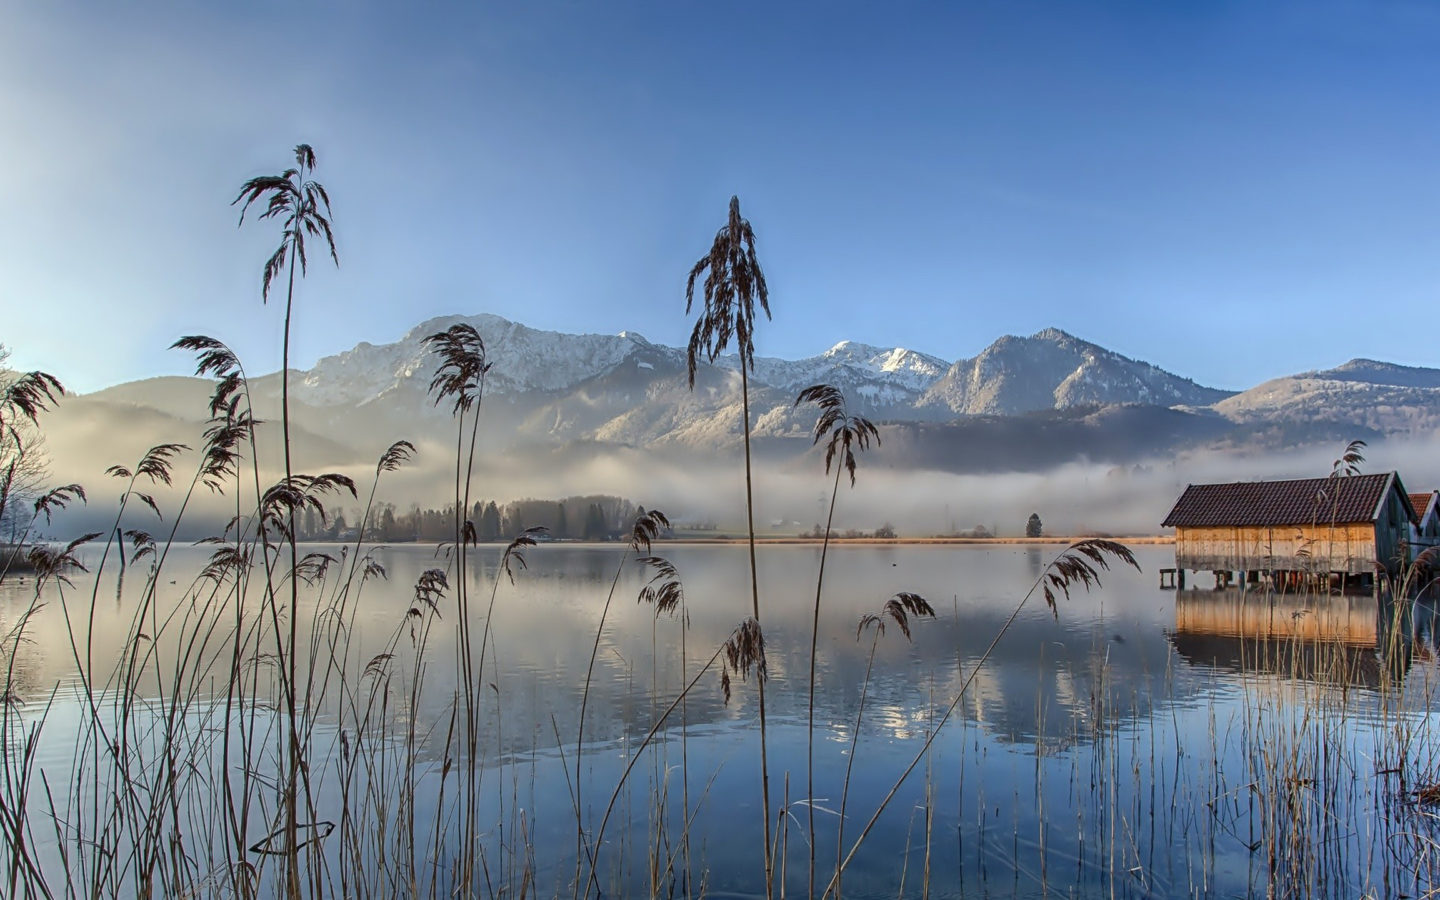 Hd Snowy Mountain Wallpaper Lake Cane Reeds Wooden Fishing Houses Fog Evaporation